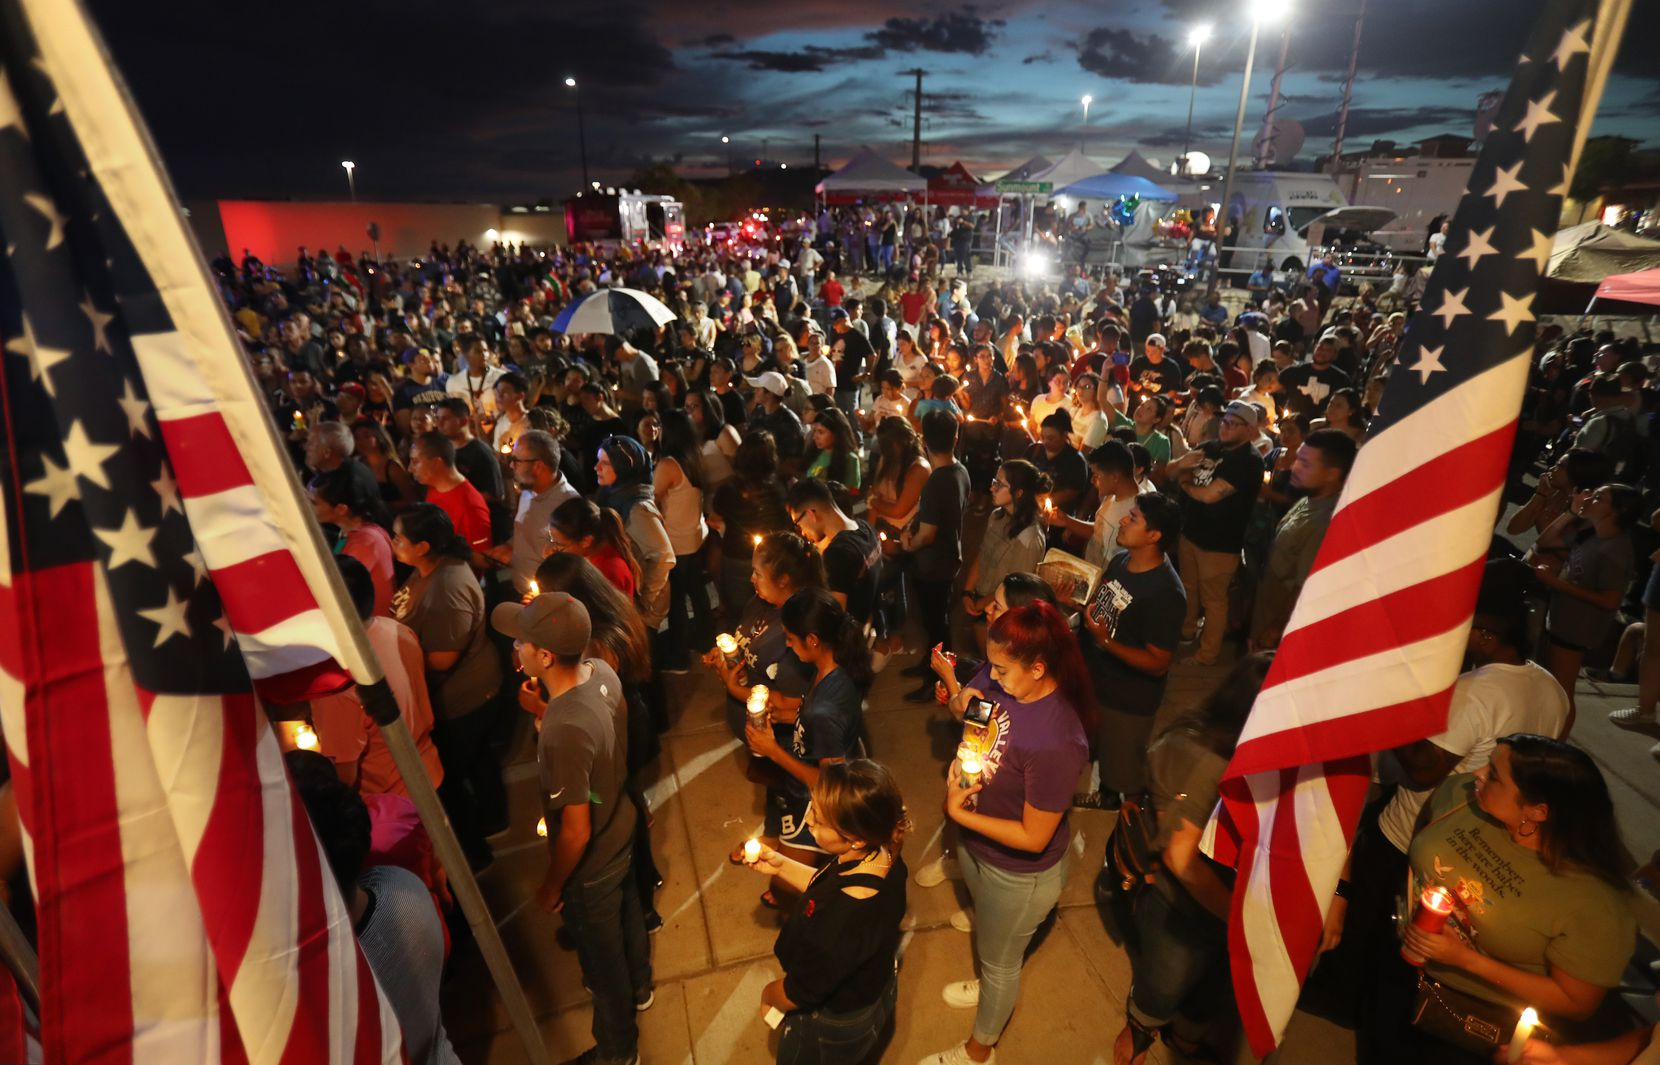 EL PASO, TEXAS - AUGUST 07: People attend a candlelight vigil at a makeshift memorial honoring victims of a mass shooting which left at least 22 people dead, on August 7, 2019 in El Paso, Texas. President Donald Trump visited the city earlier today. A 21-year-old white male suspect remains in custody in El Paso which sits along the U.S.-Mexico border.